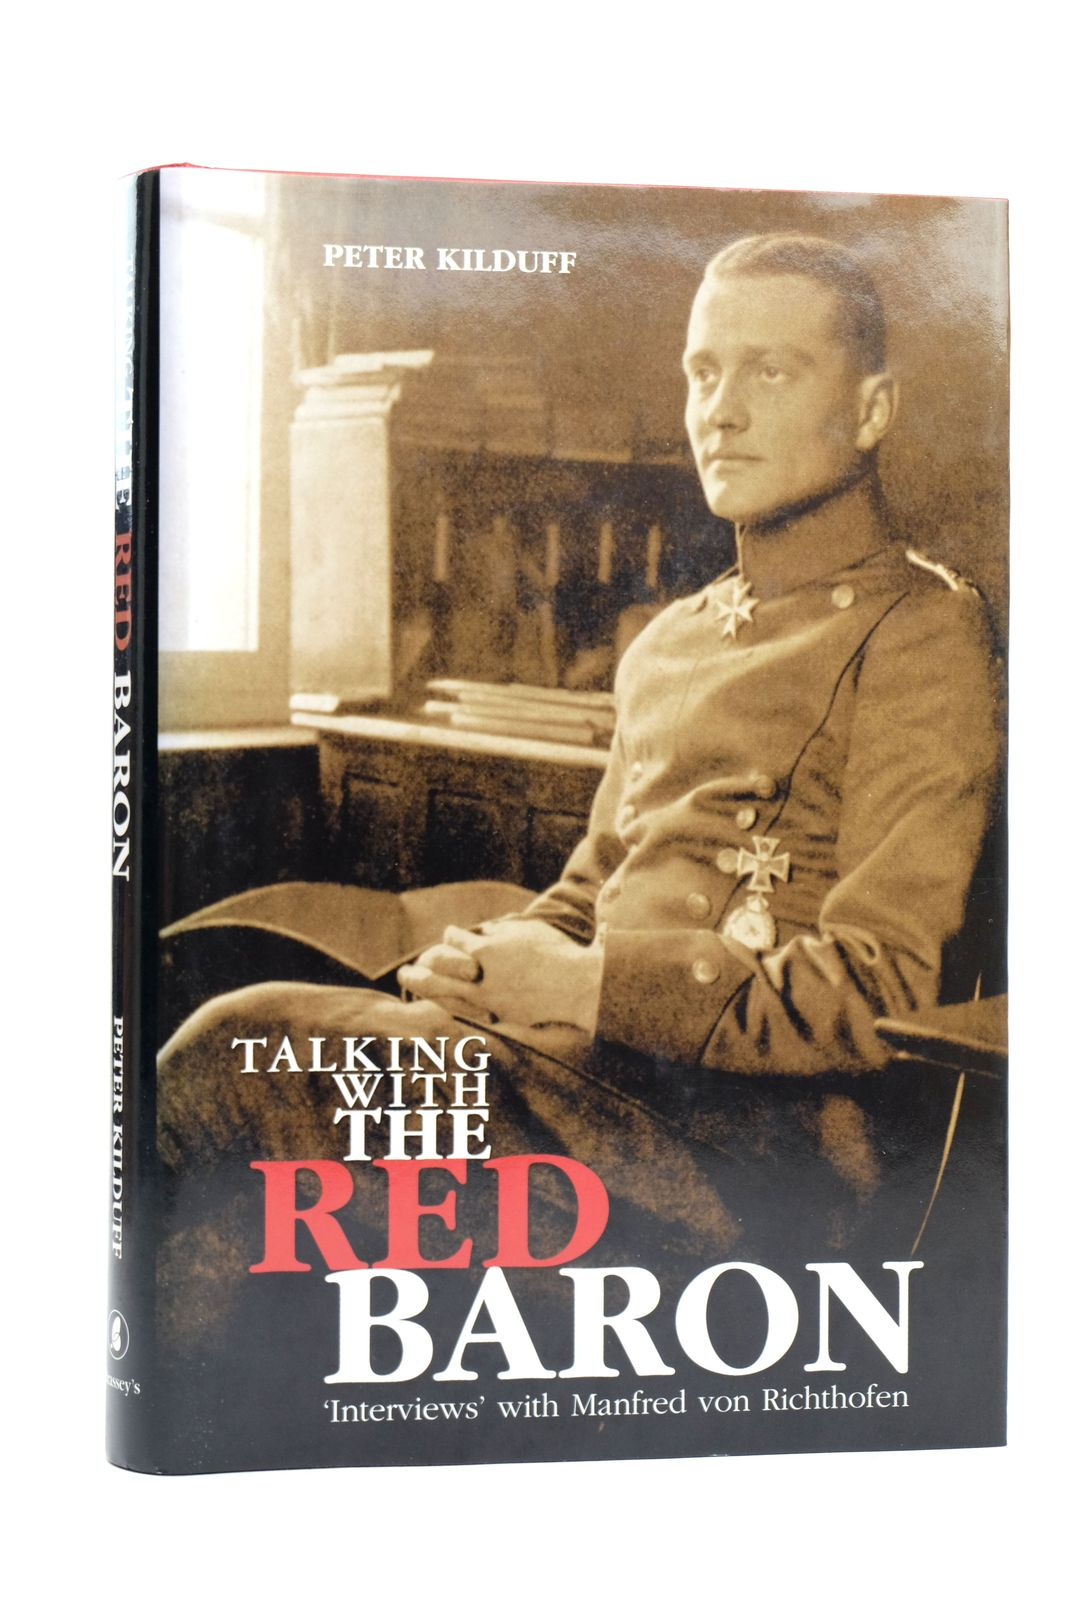 Photo of TALKING WITH THE RED BARON written by Kilduff, Peter Von Richthofen, Manfred published by Brassey's (STOCK CODE: 1818670)  for sale by Stella & Rose's Books